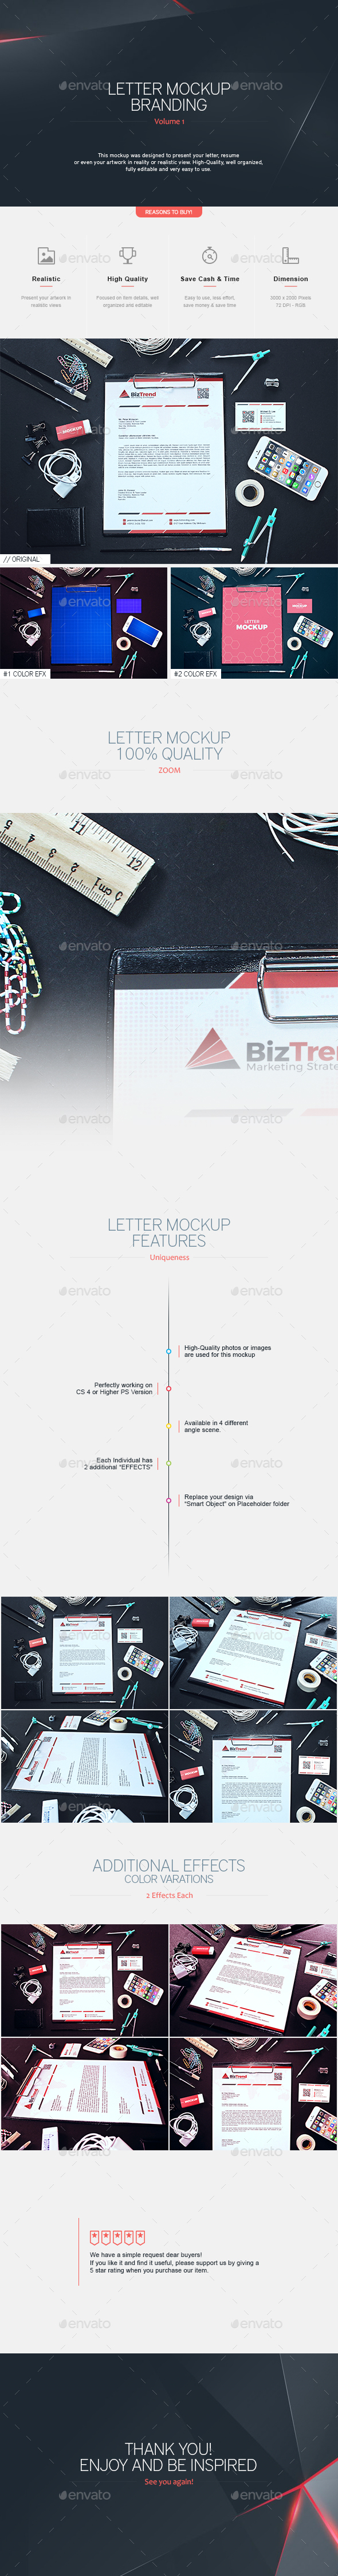 Letter Mock-up Branding V.1 (Stationery)